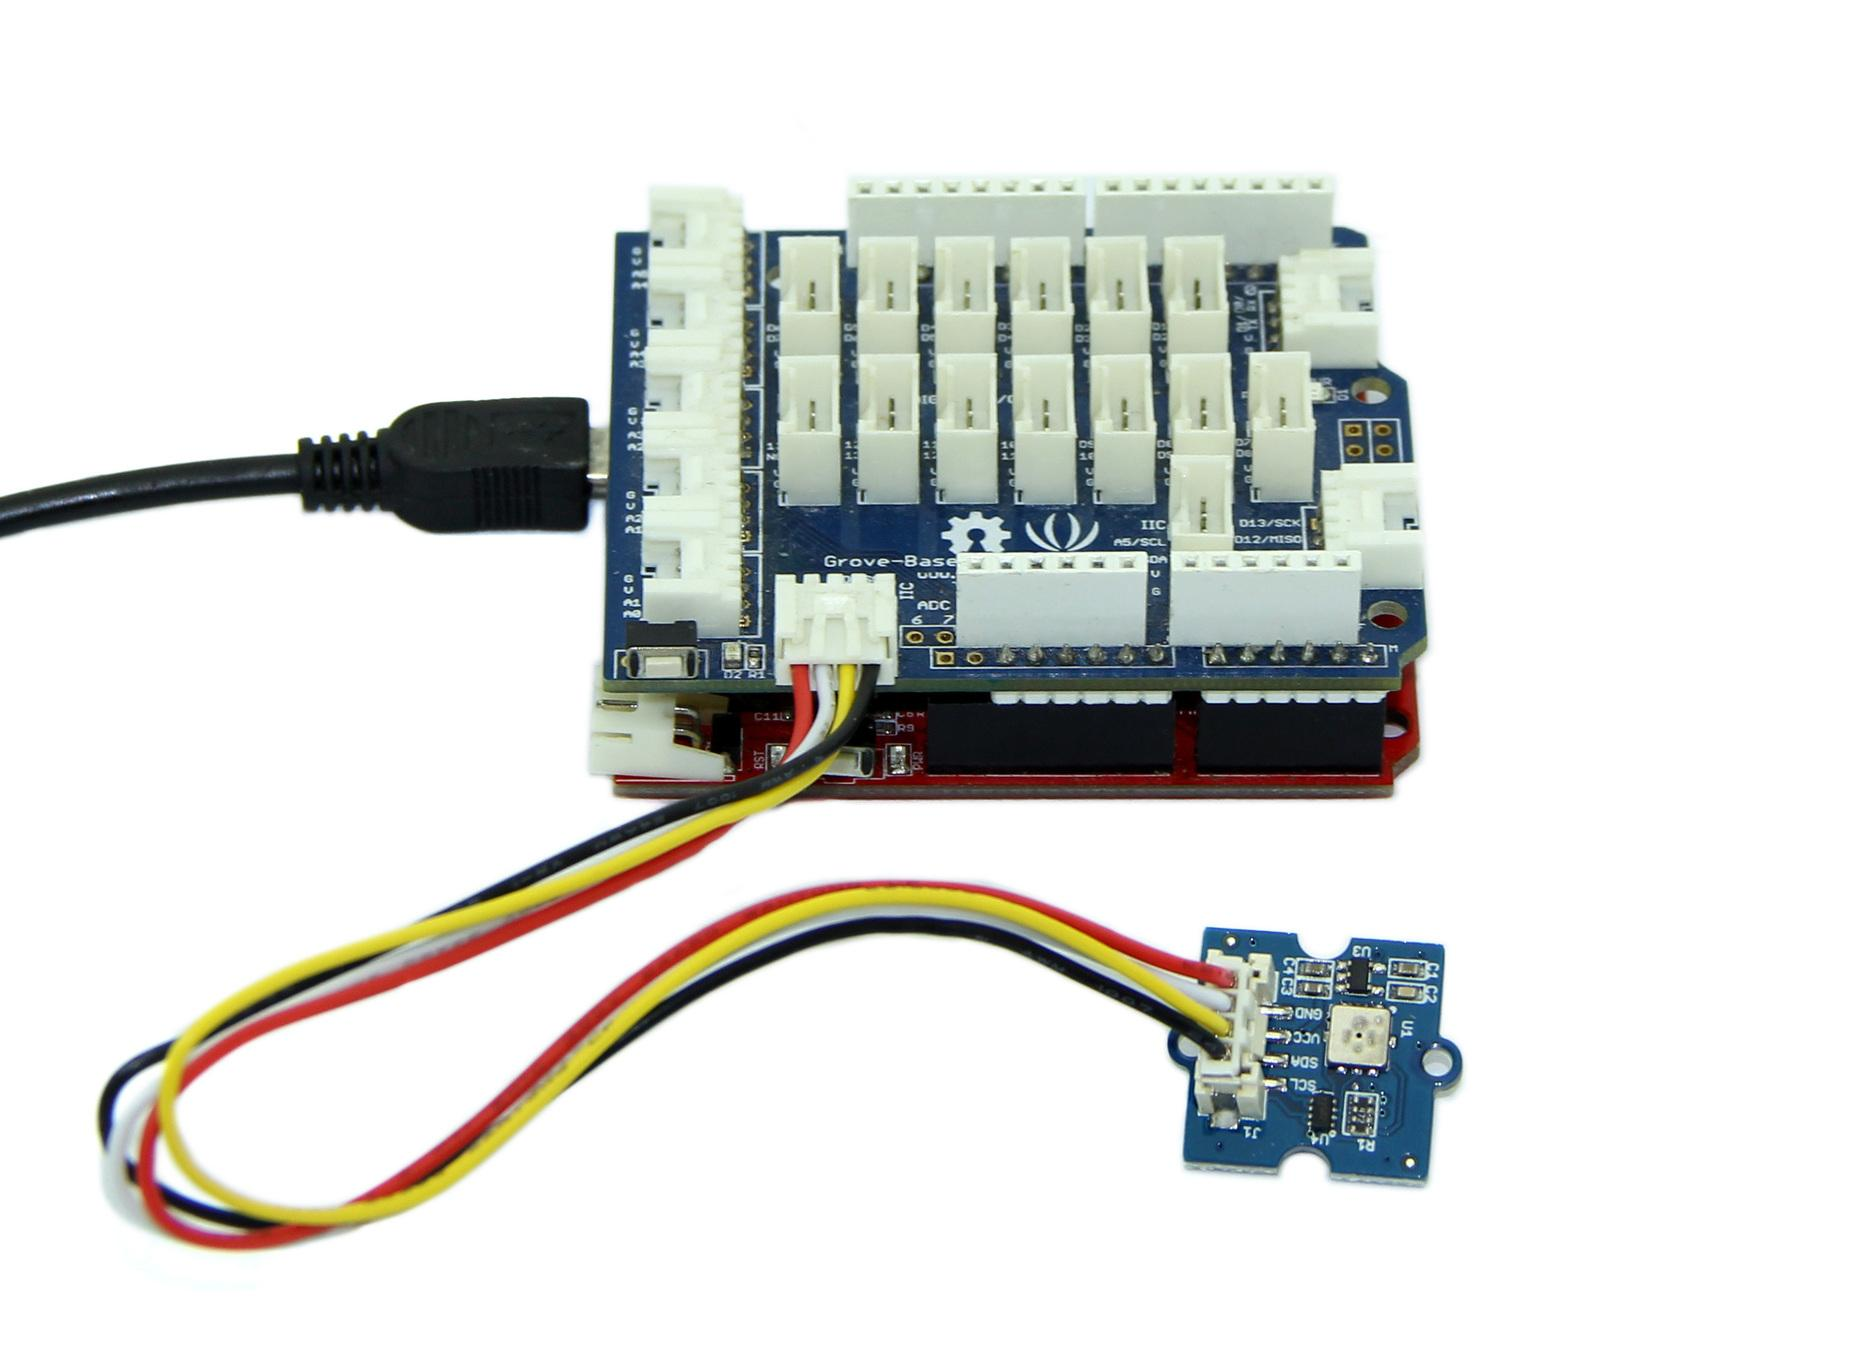 hight resolution of connect it to i2c port of seeeduino or grove base shield via a grove cable and connect arduino to pc via a usb cable